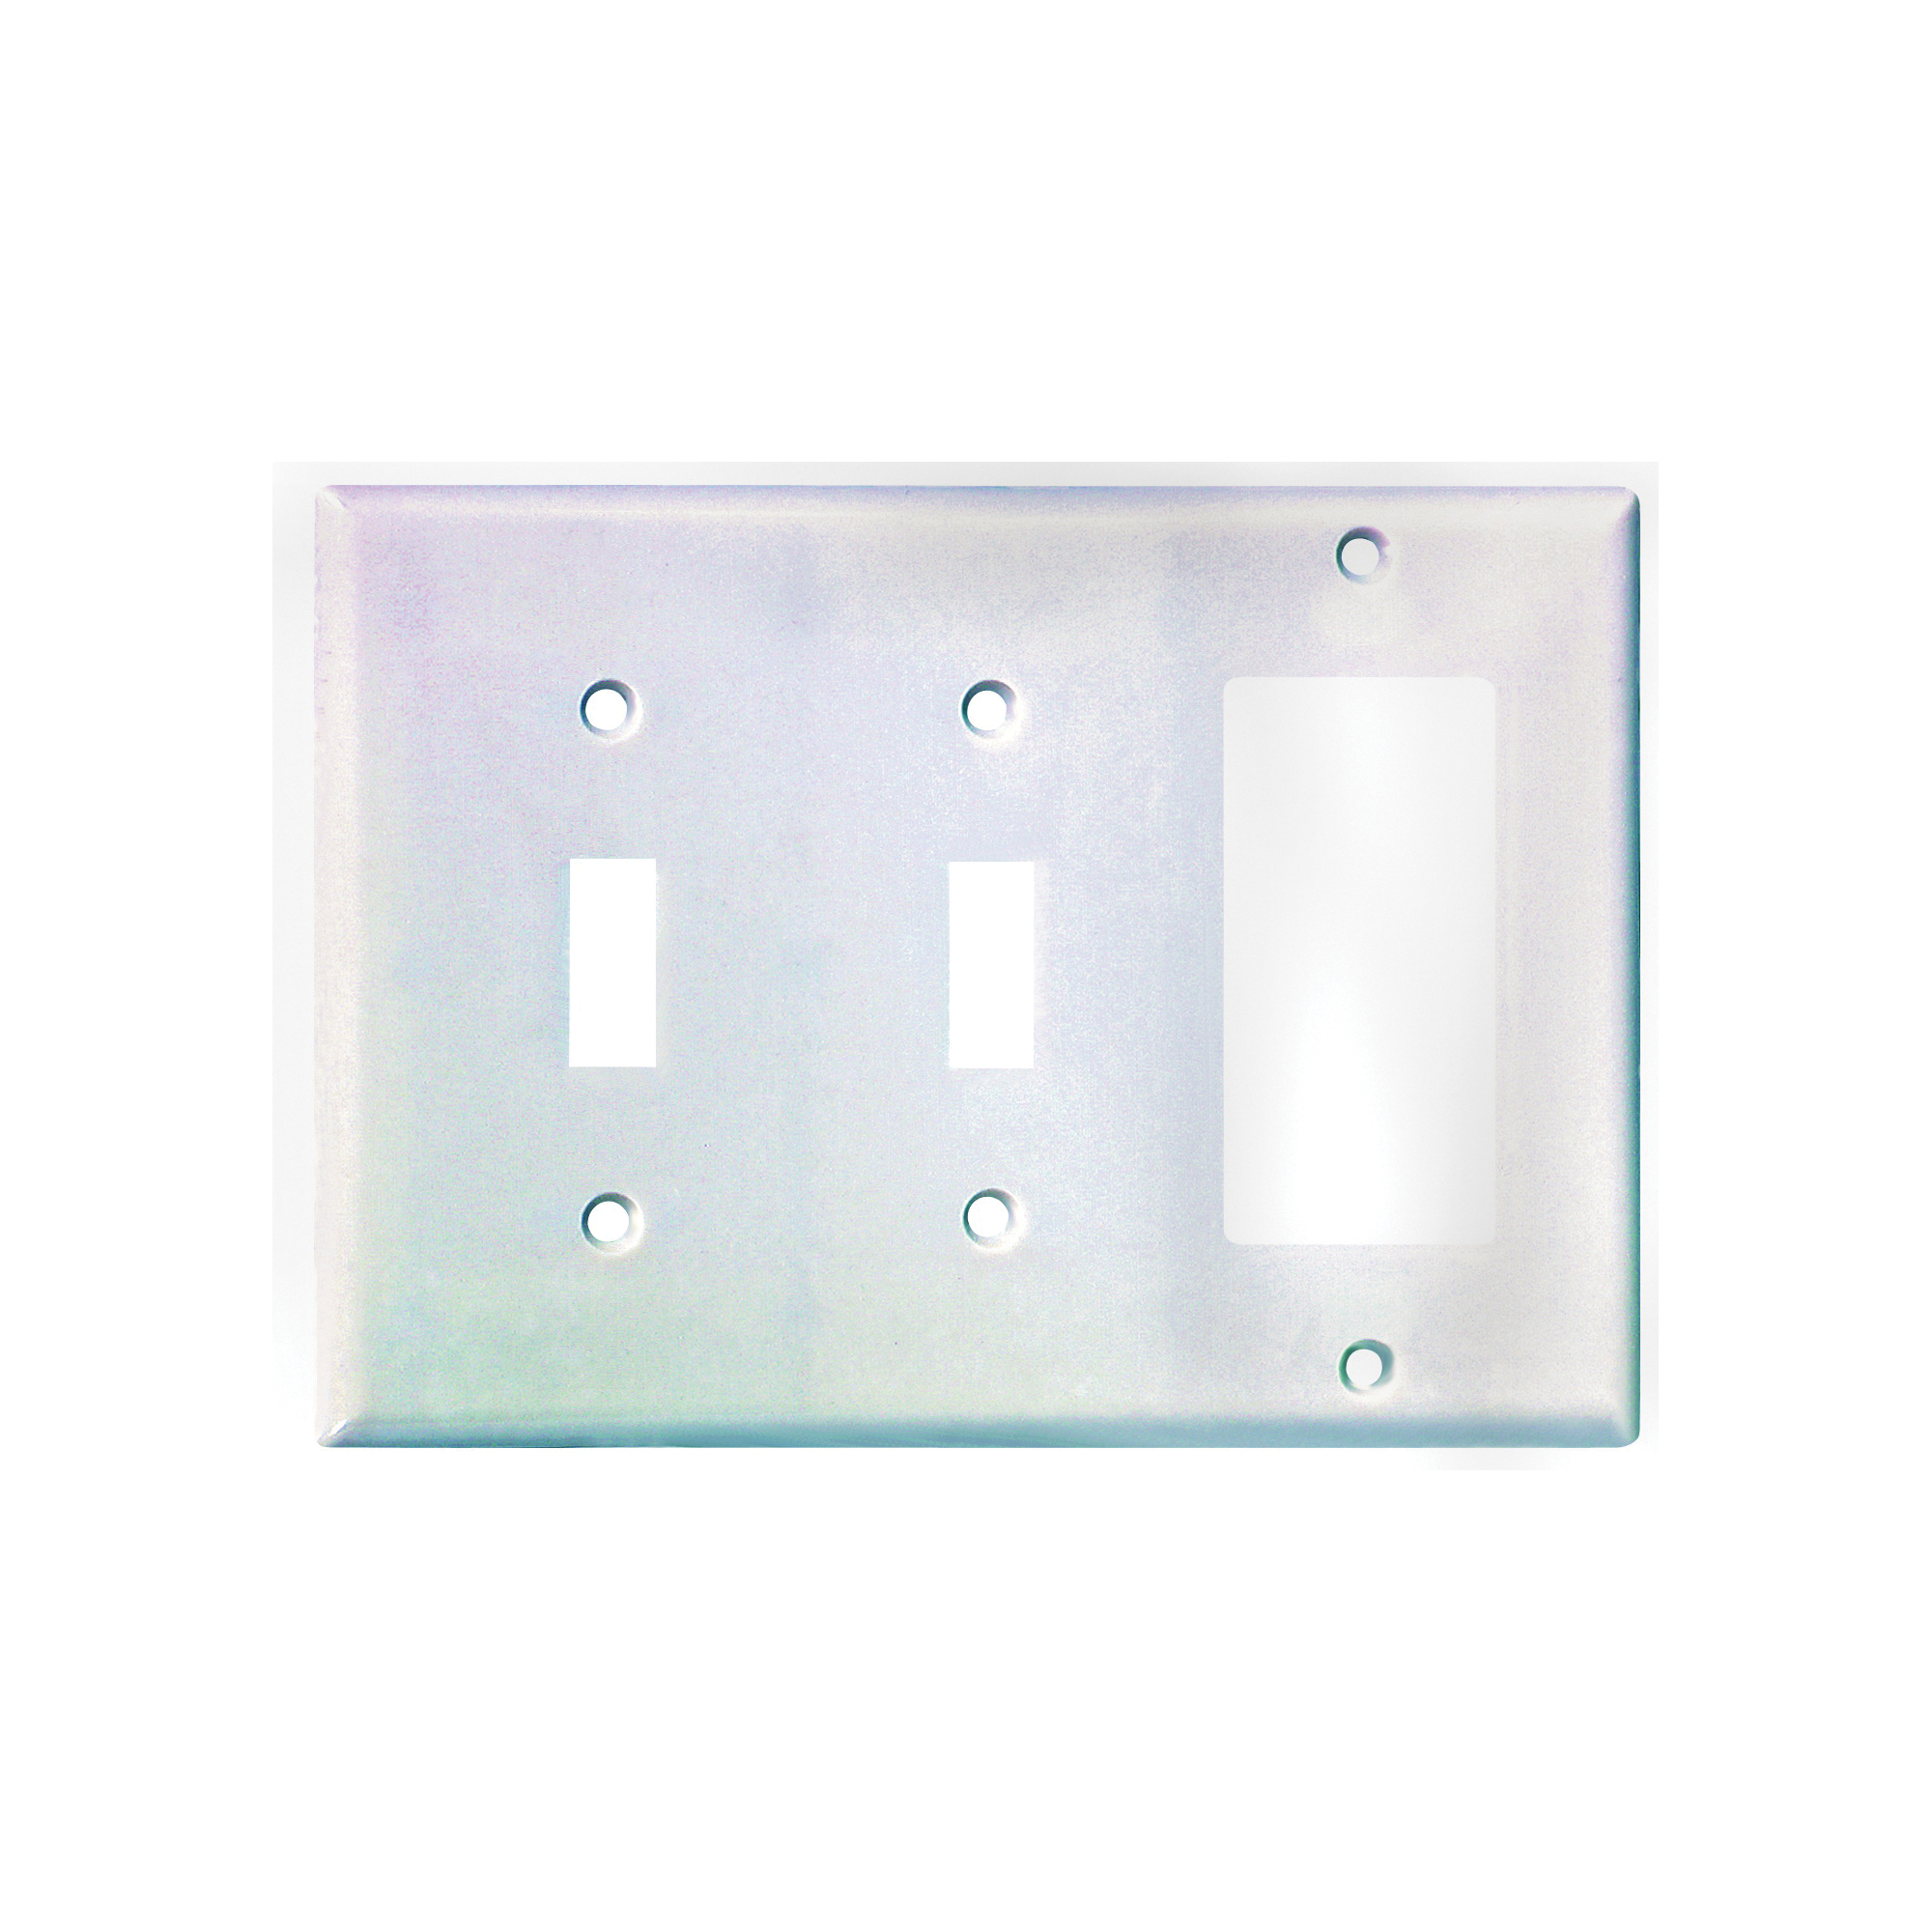 Picture of Eaton Wiring Devices 2173W-BOX Wallplate, 4-1/2 in L, 6-3/8 in W, 3-Gang, Thermoset, White, High-Gloss